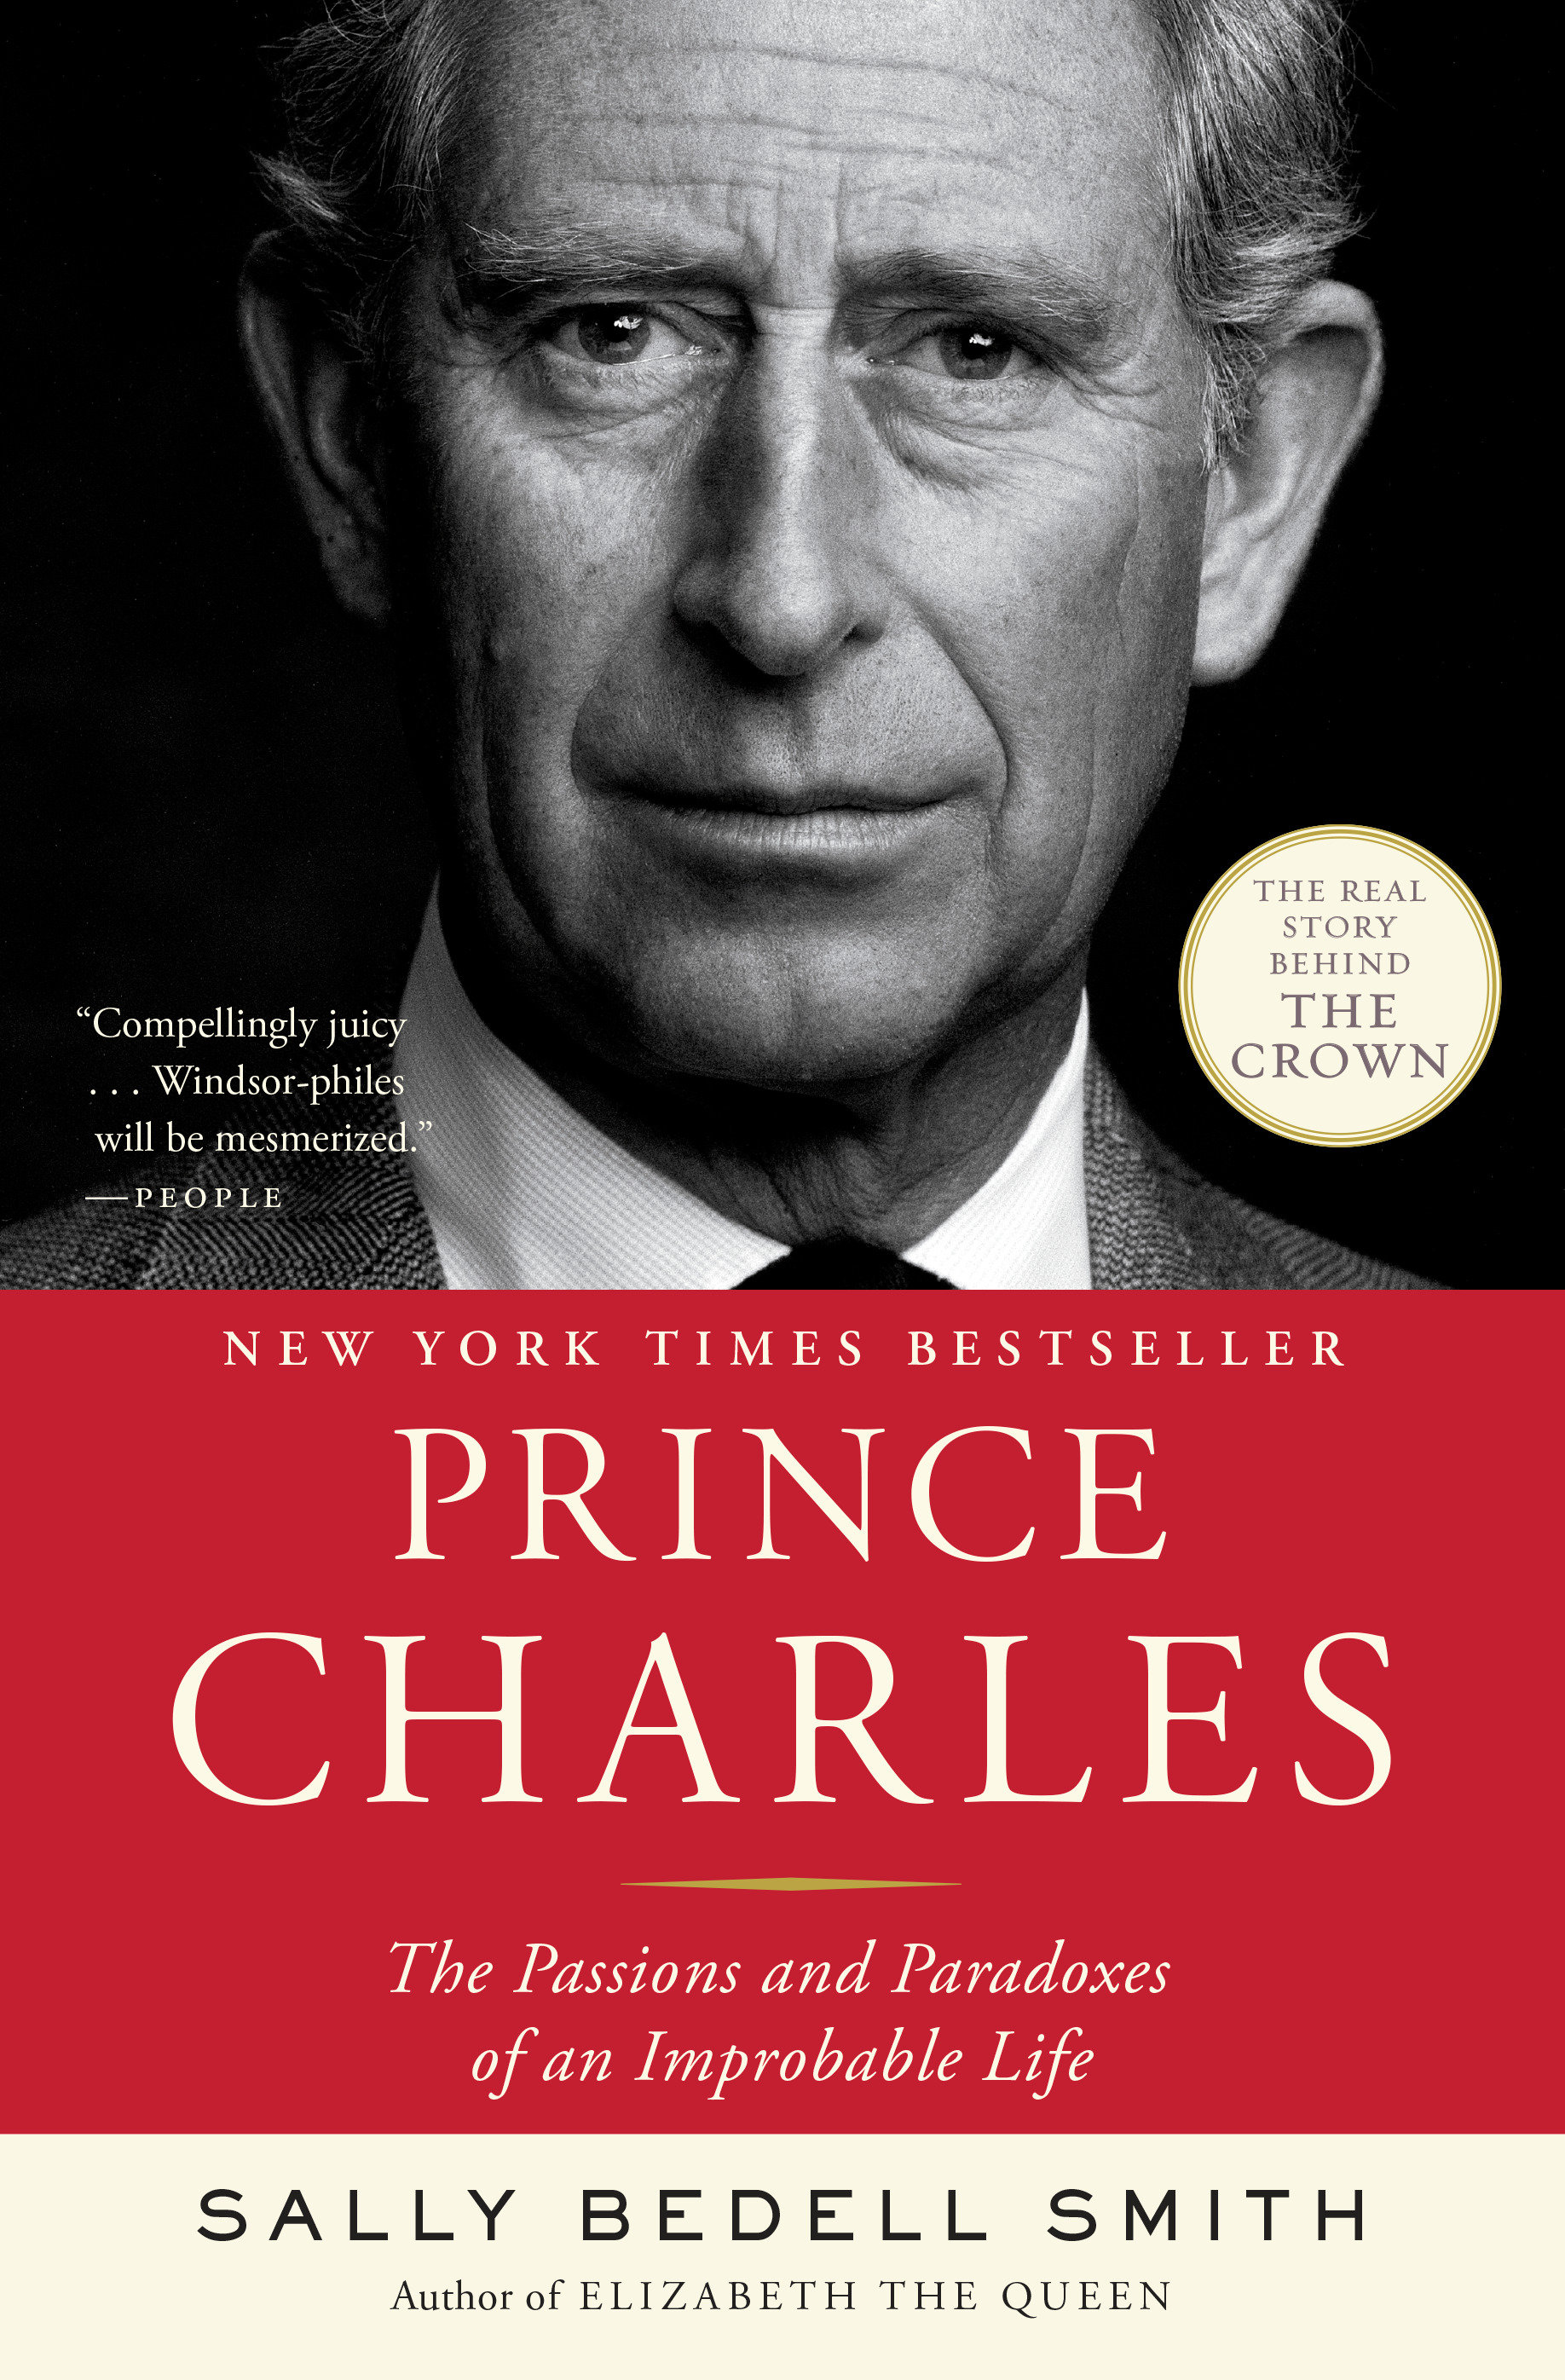 Prince Charles [EBOOK] The Passions and Paradoxes of an Improbable Life